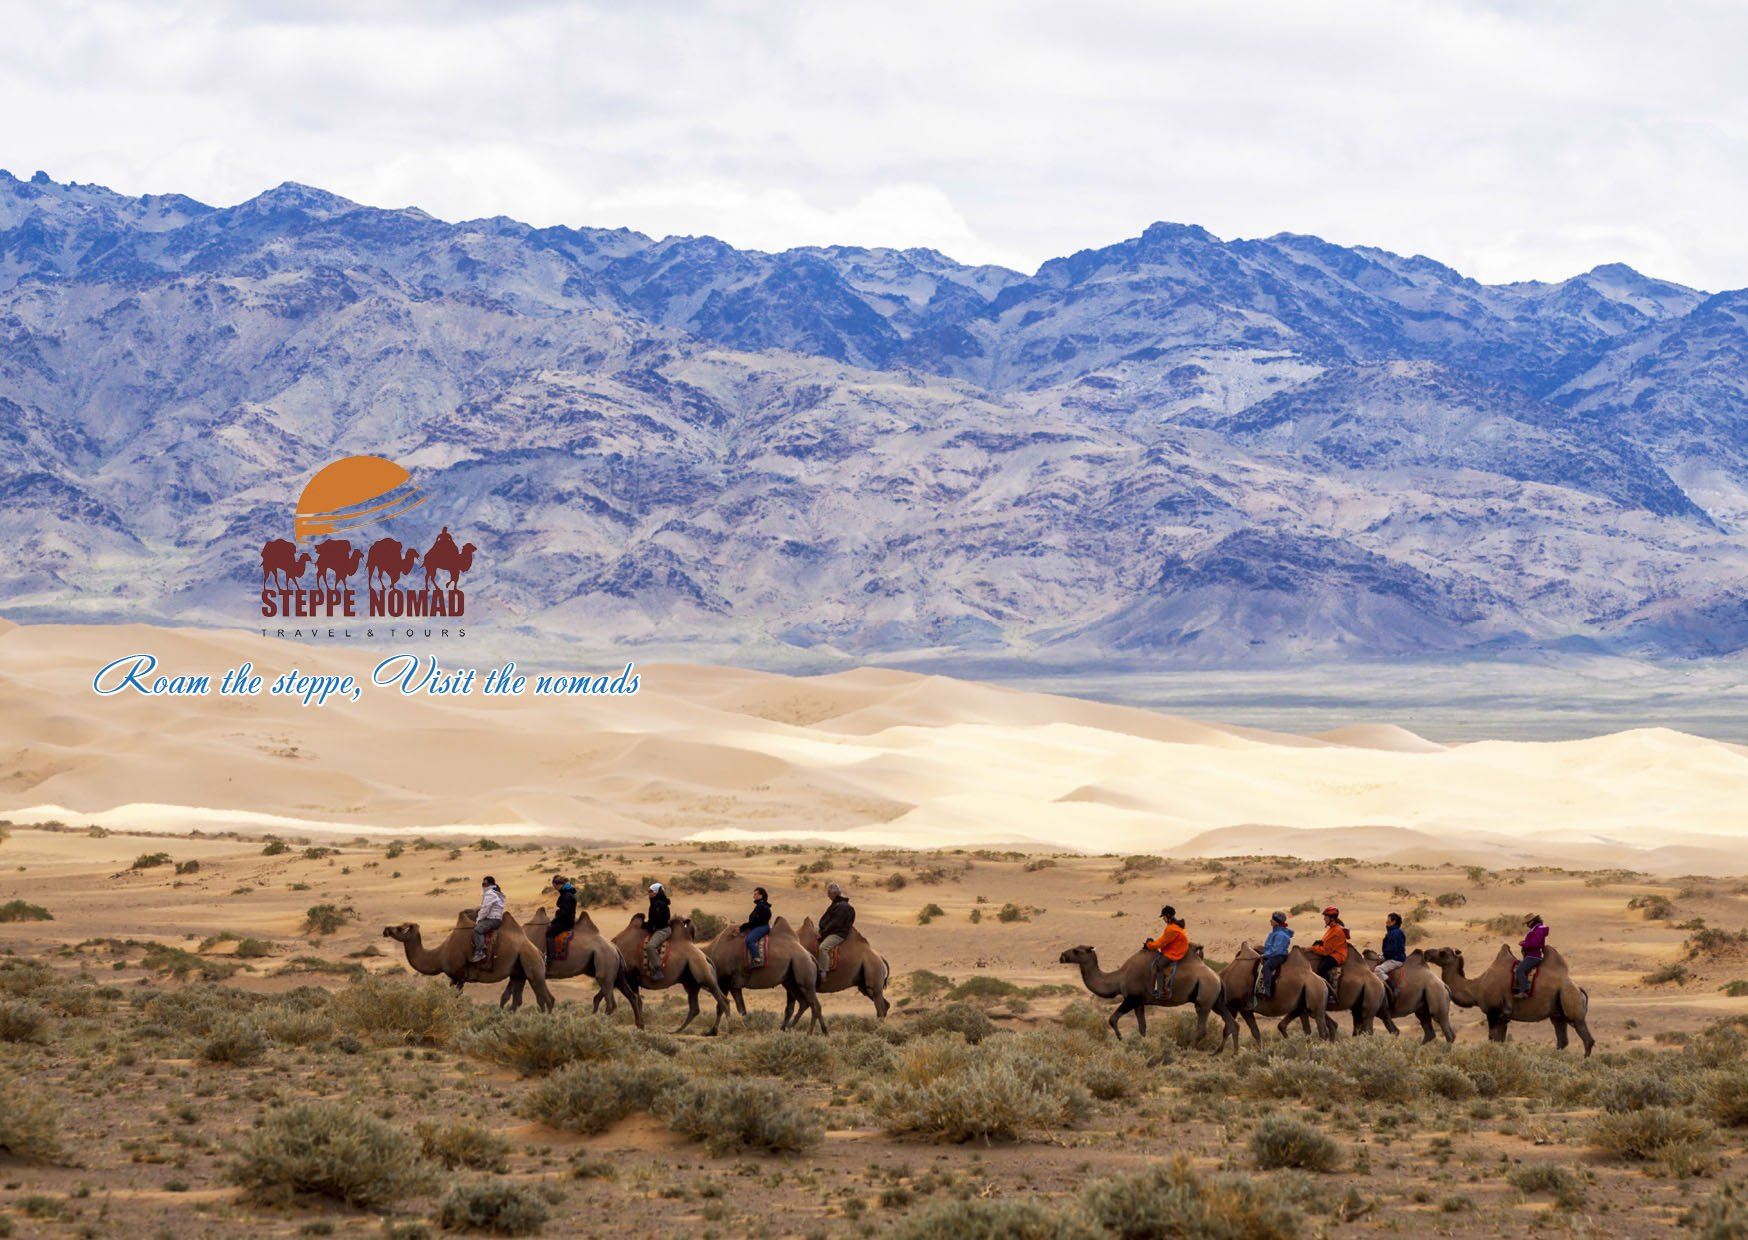 Steppe Nomad Travel & Tours Mongolia